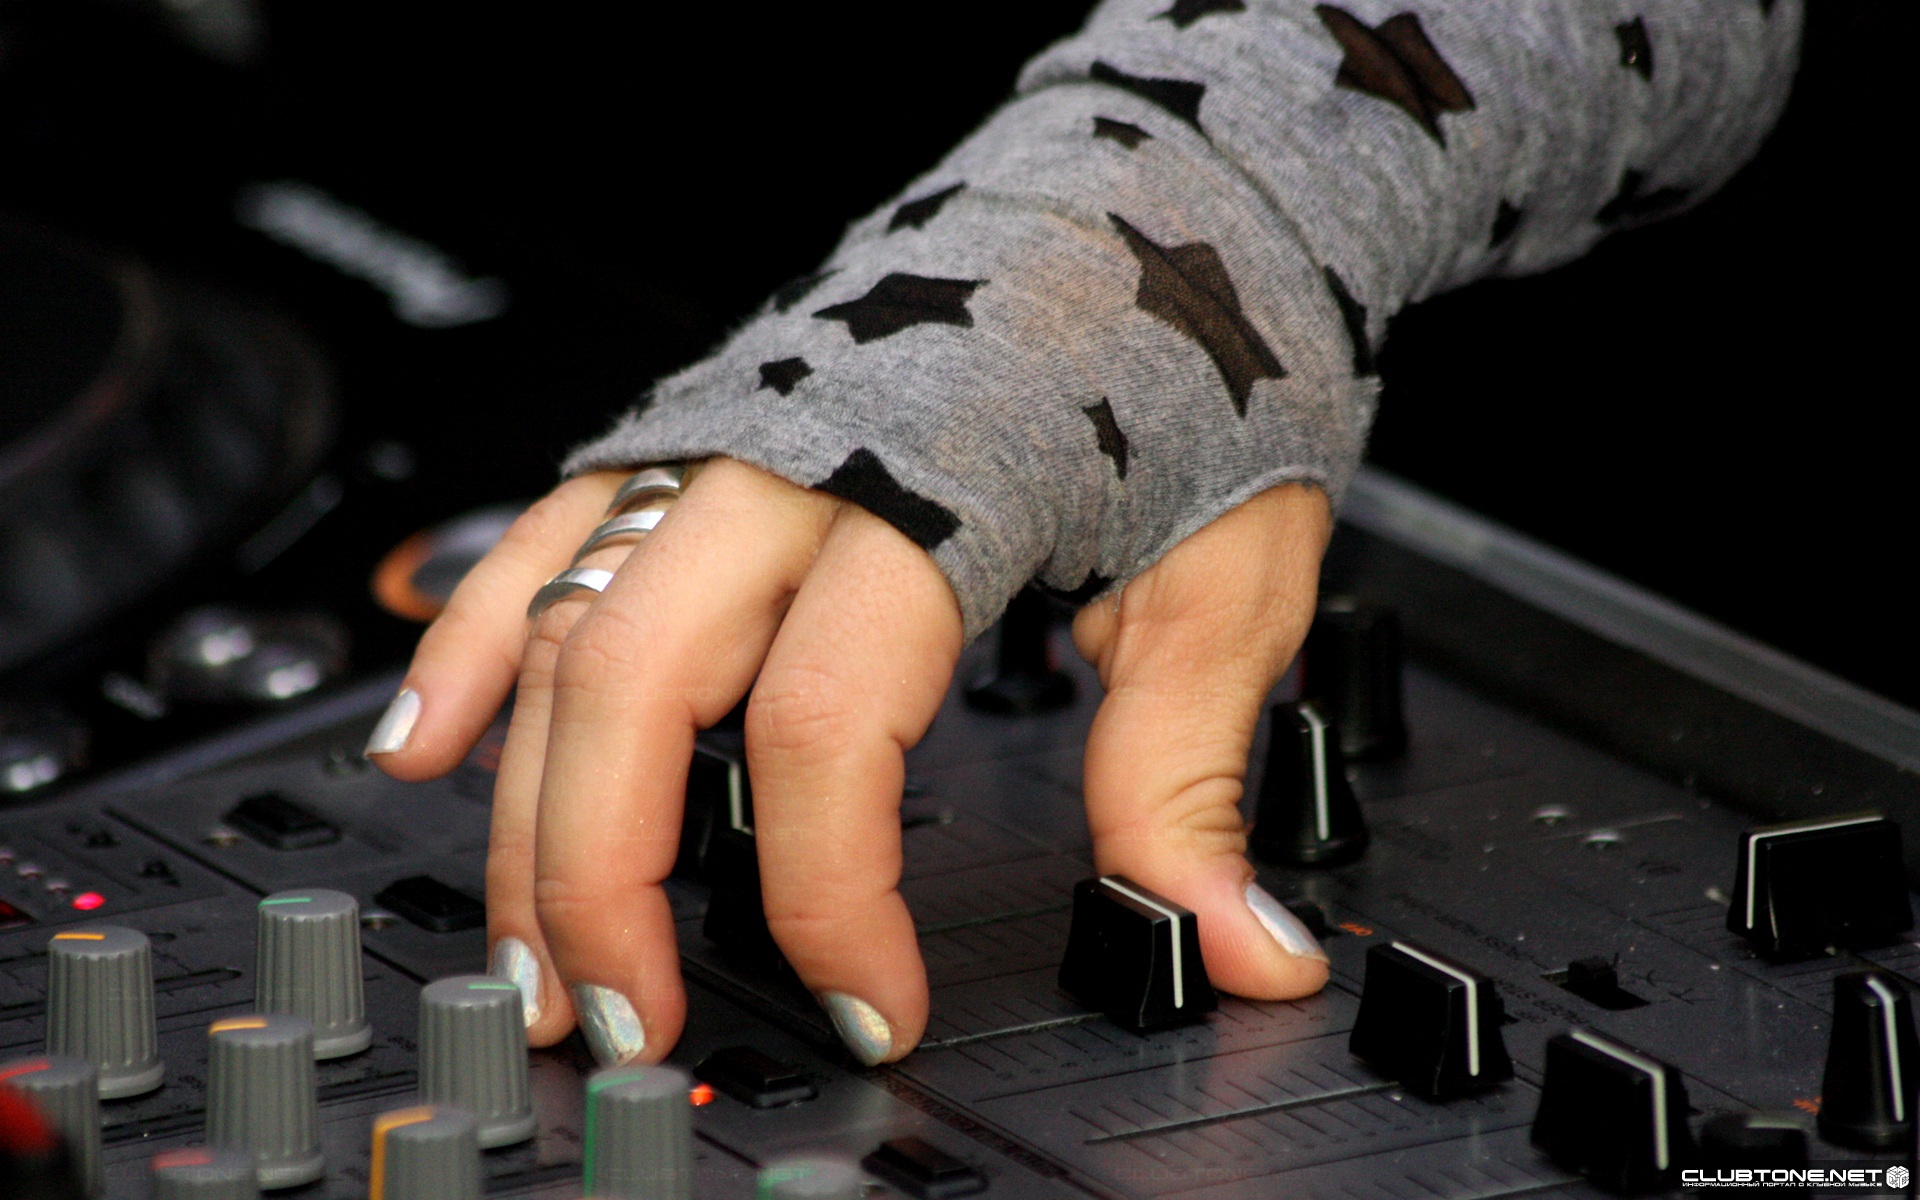 star arm DJ dj руки</a></noi dj руки